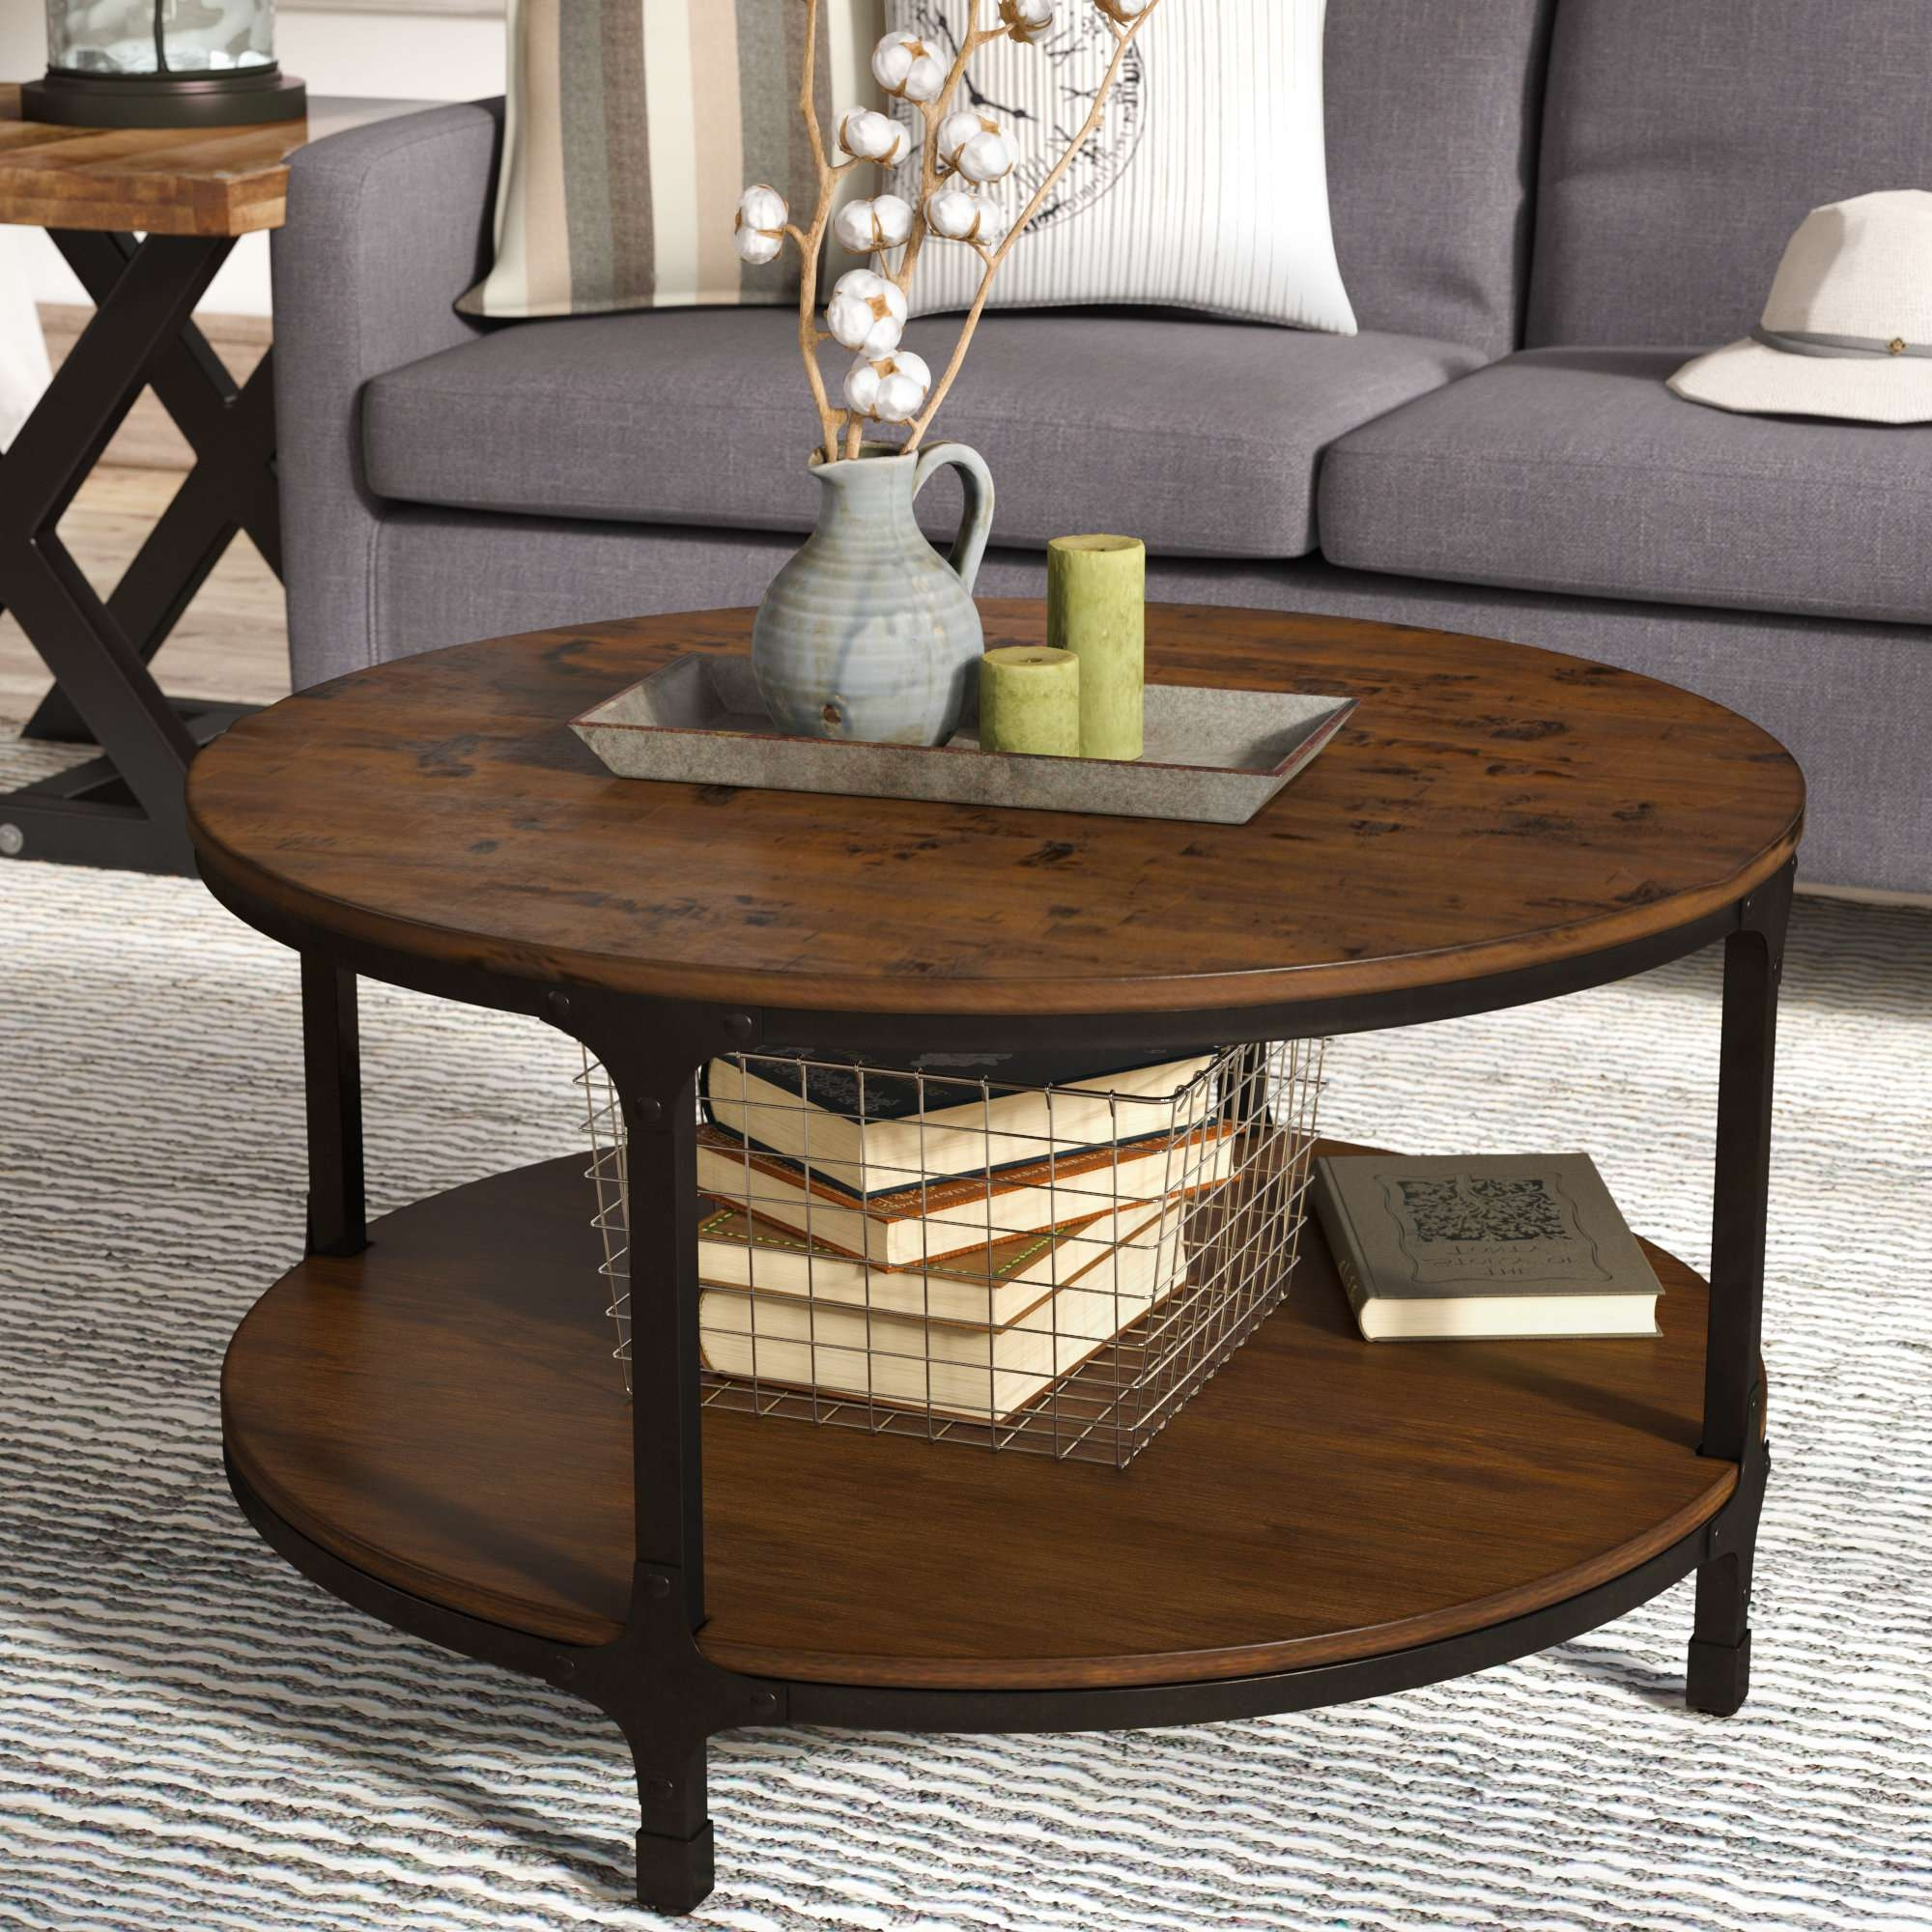 Wayfair Within Popular Small Circle Coffee Tables (View 19 of 20)